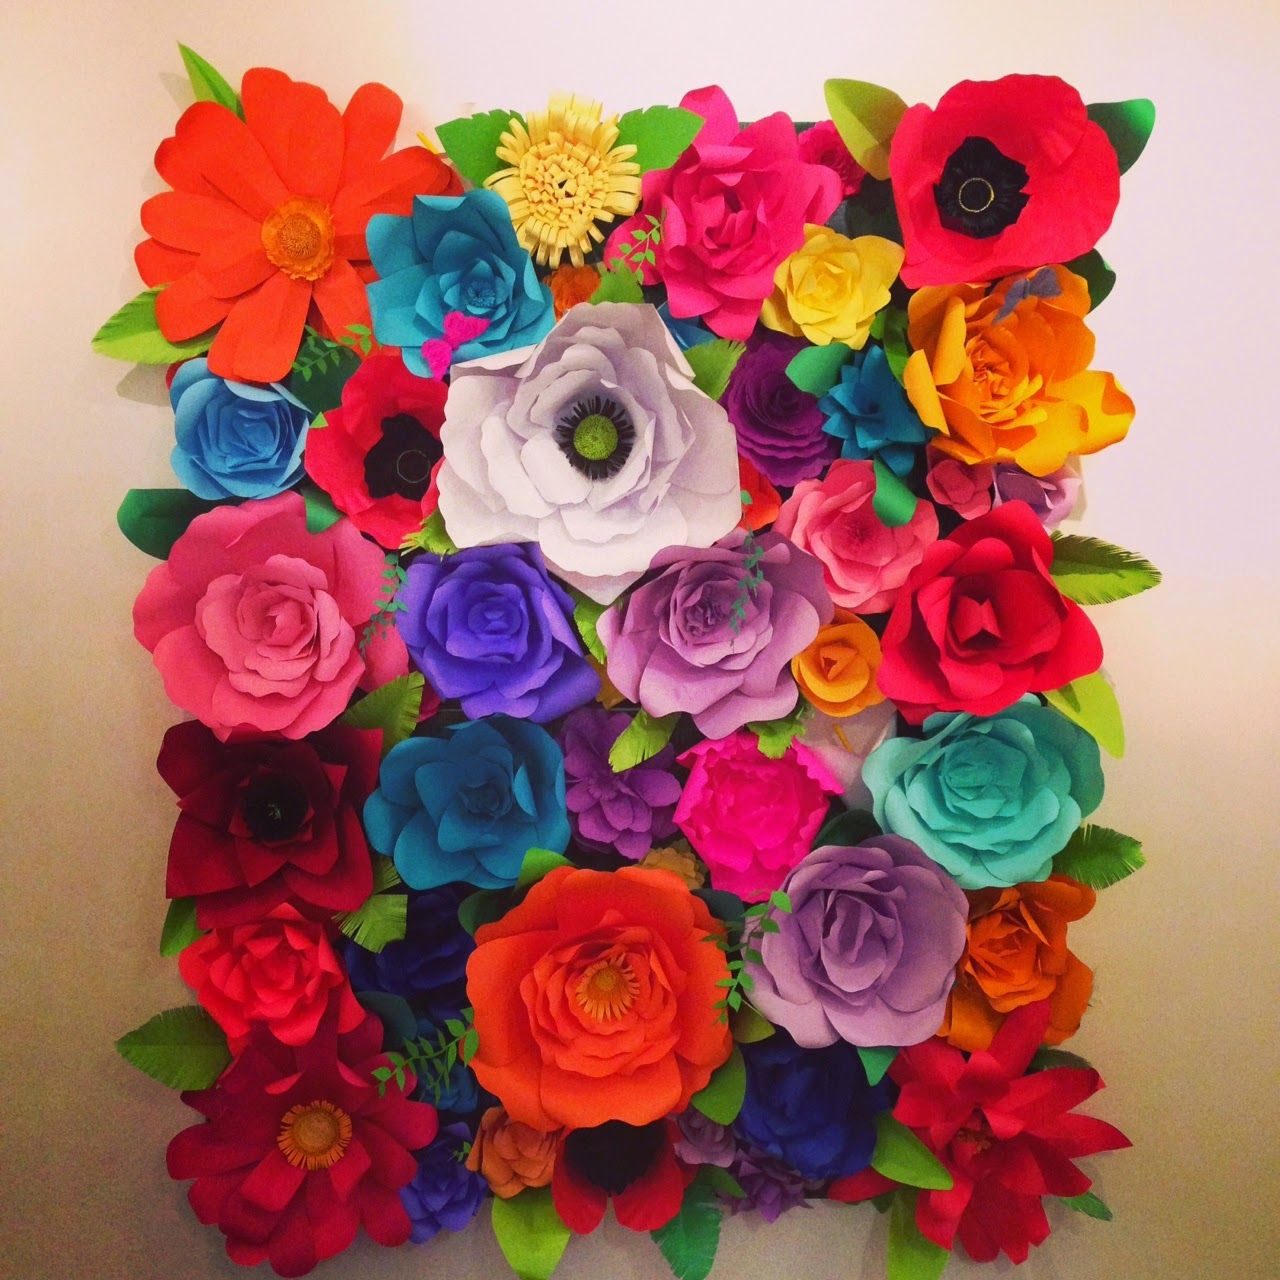 Cute flower backdrop for a fiesta photo shoot or event   Mexican     Cute flower backdrop for a fiesta photo shoot or event